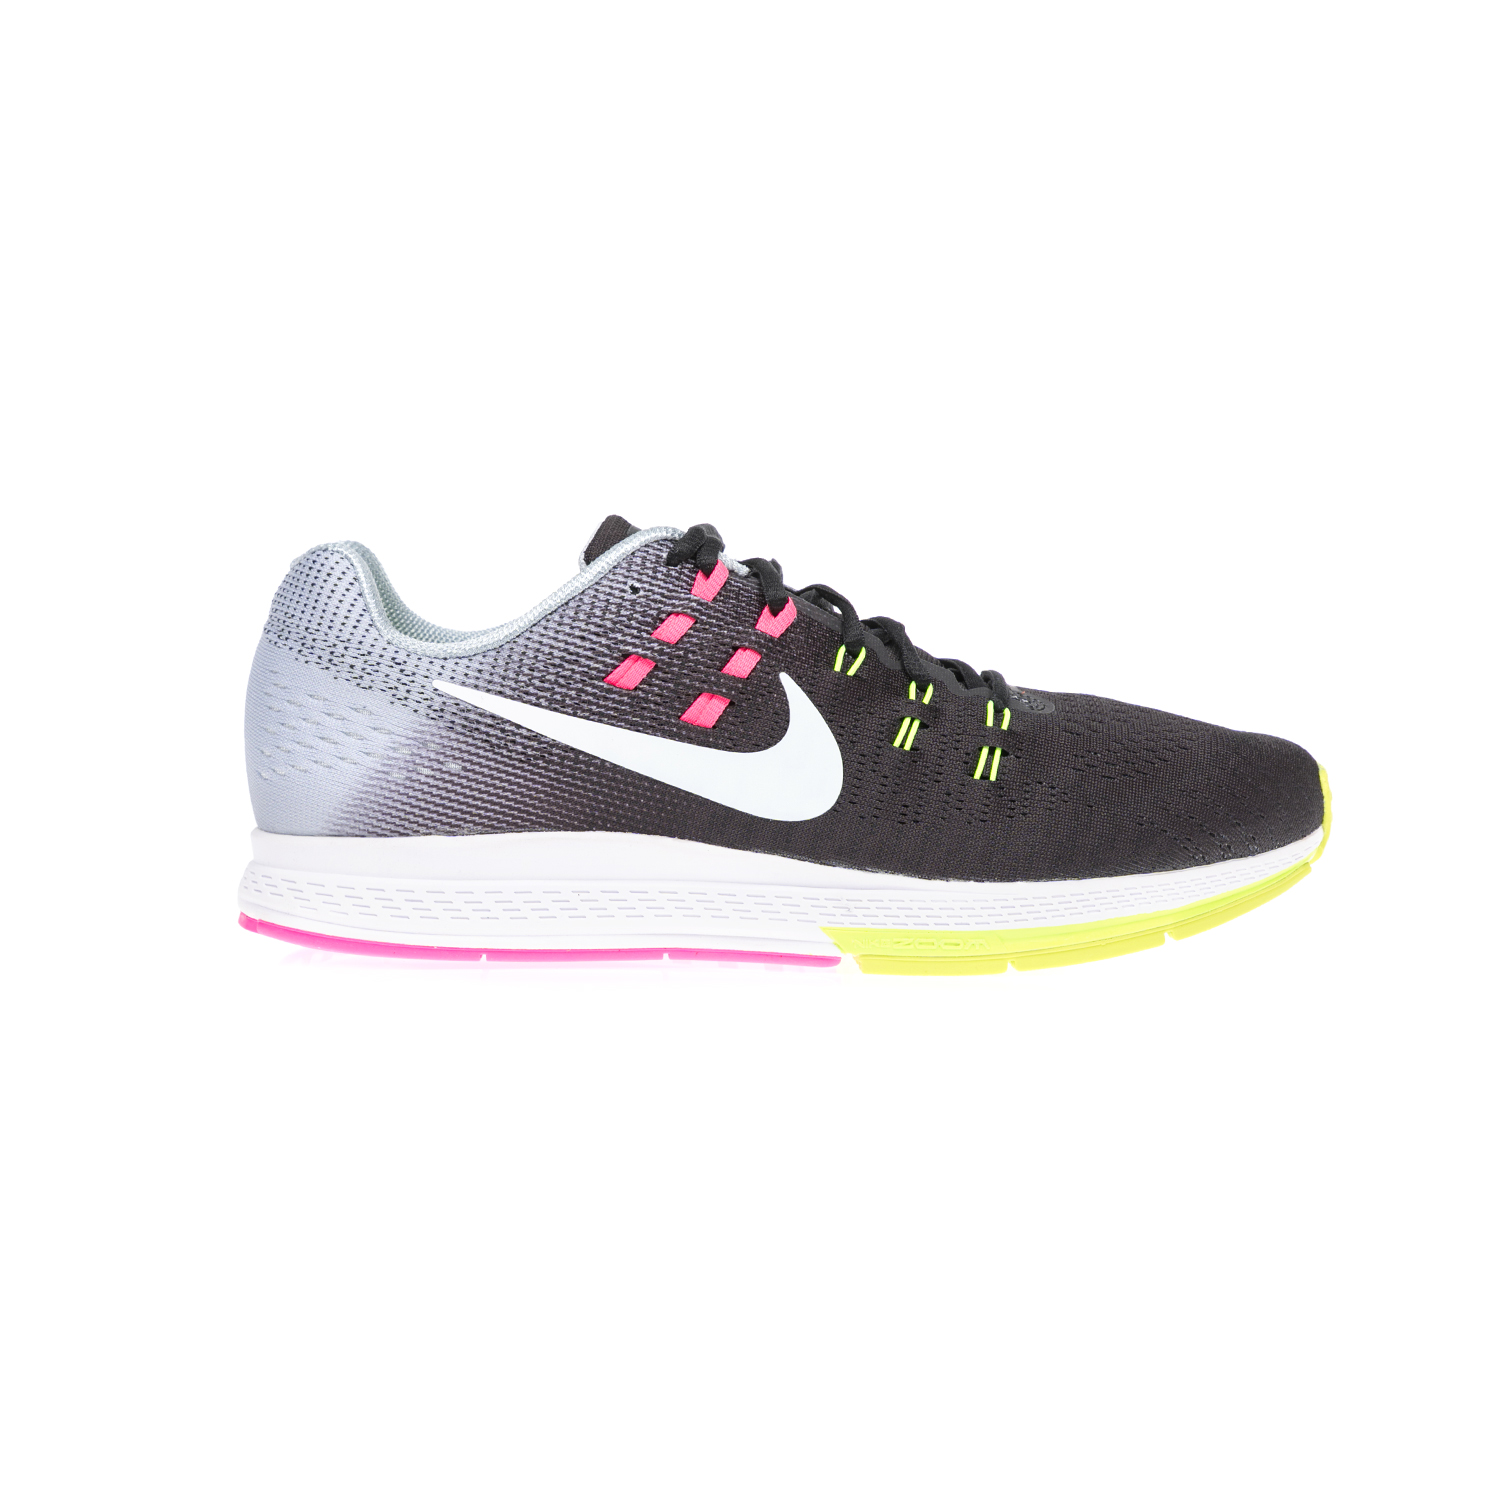 NIKE – Αντρικά αθλητικά παπούτσια NIKE AIR ZOOM STRUCTURE 19 μαύρα